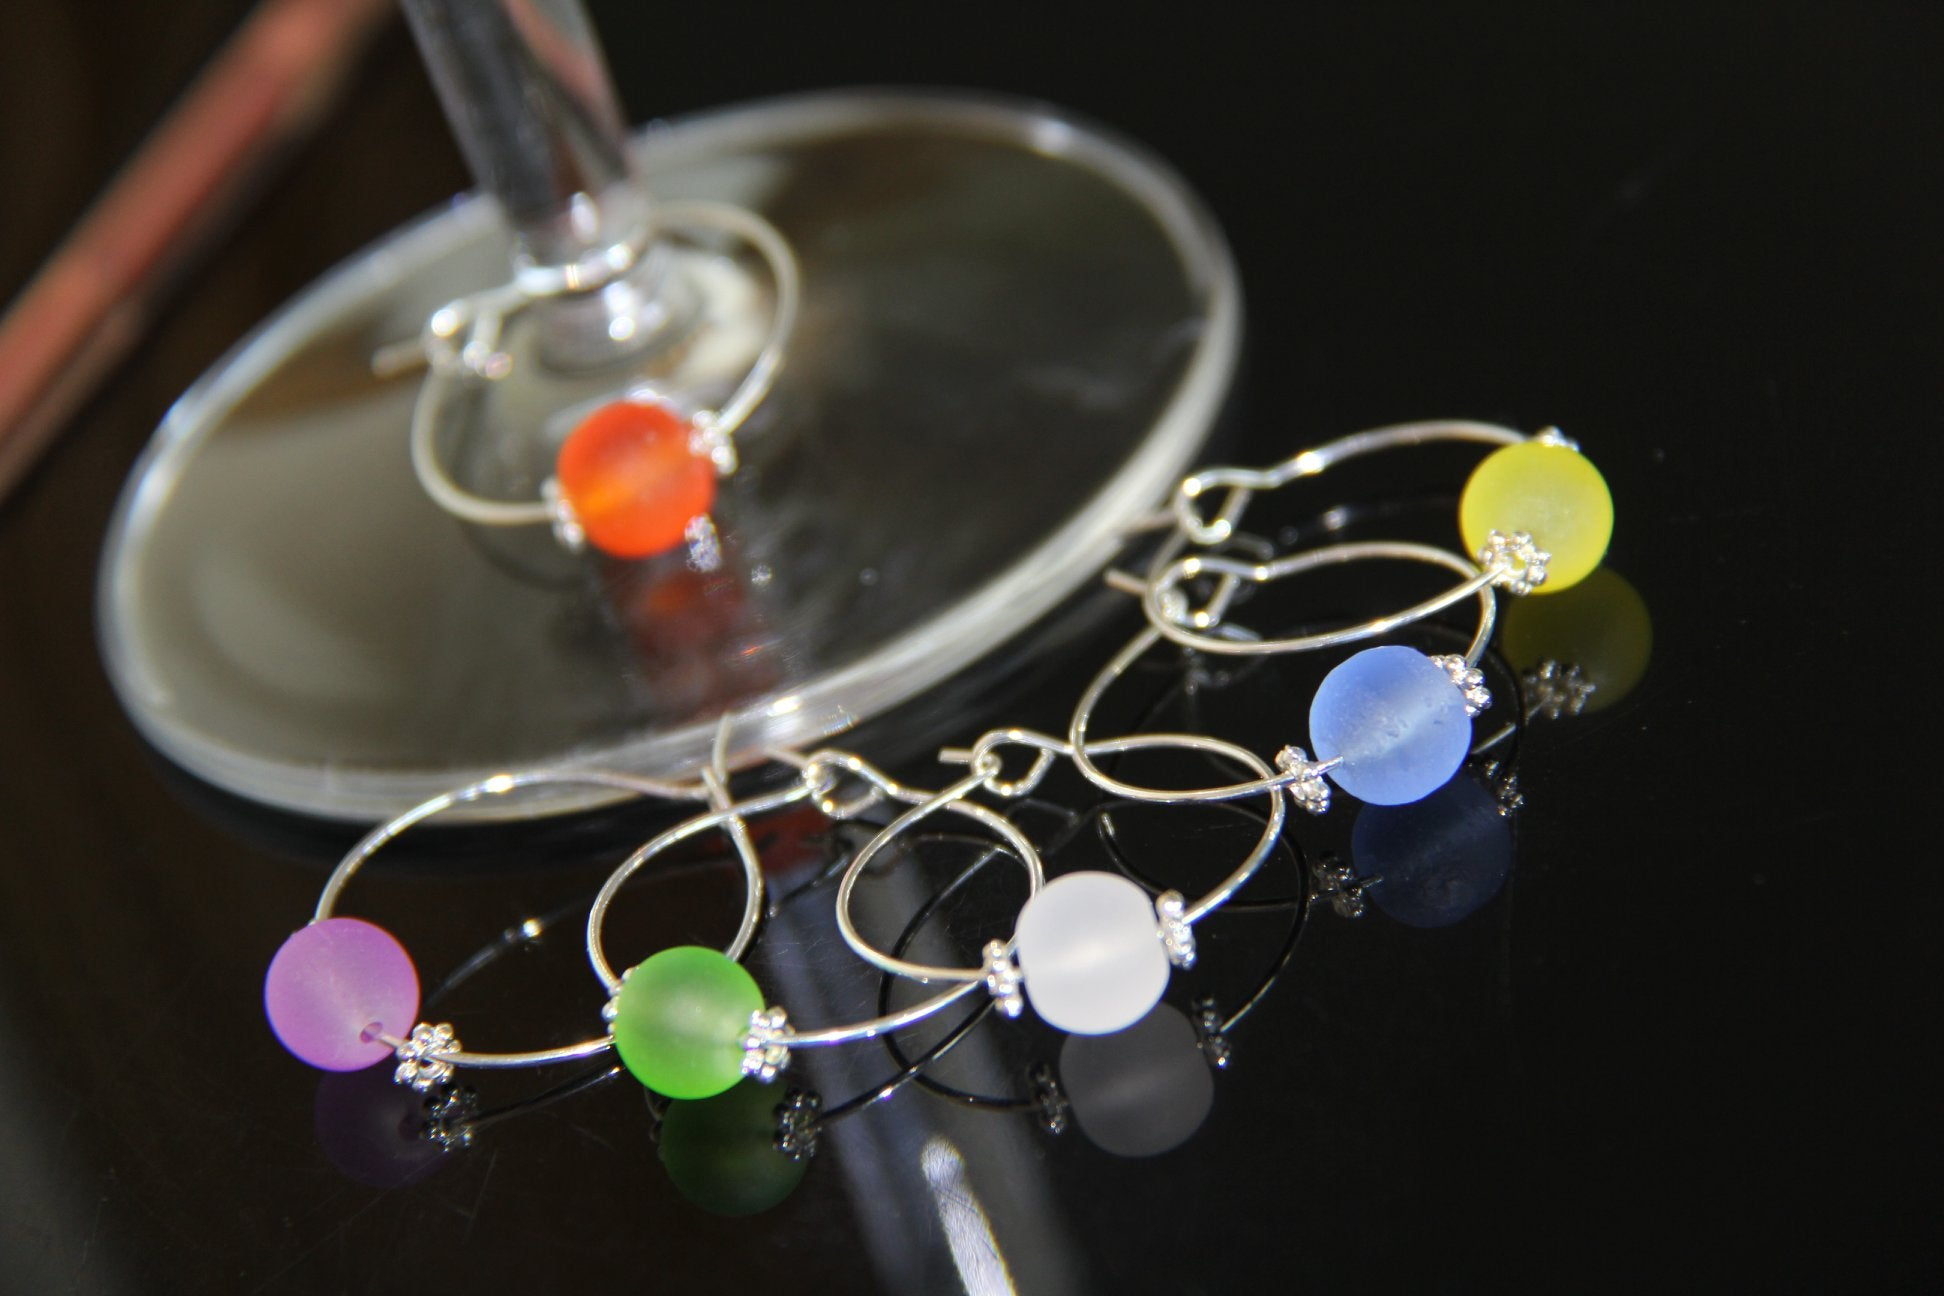 Silver Seaglass Beads - Wine Glass Rings